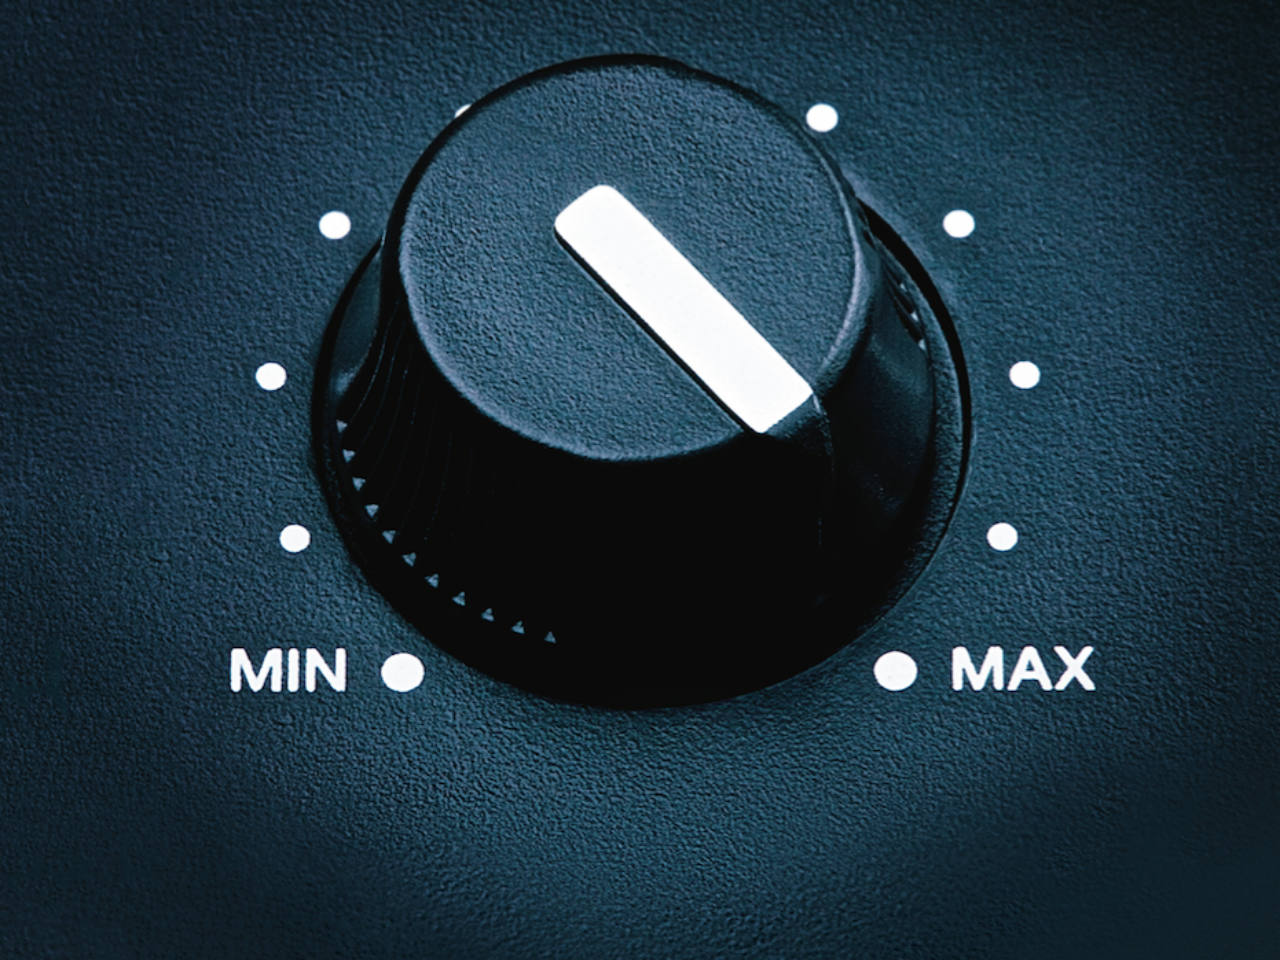 A dial turned to max